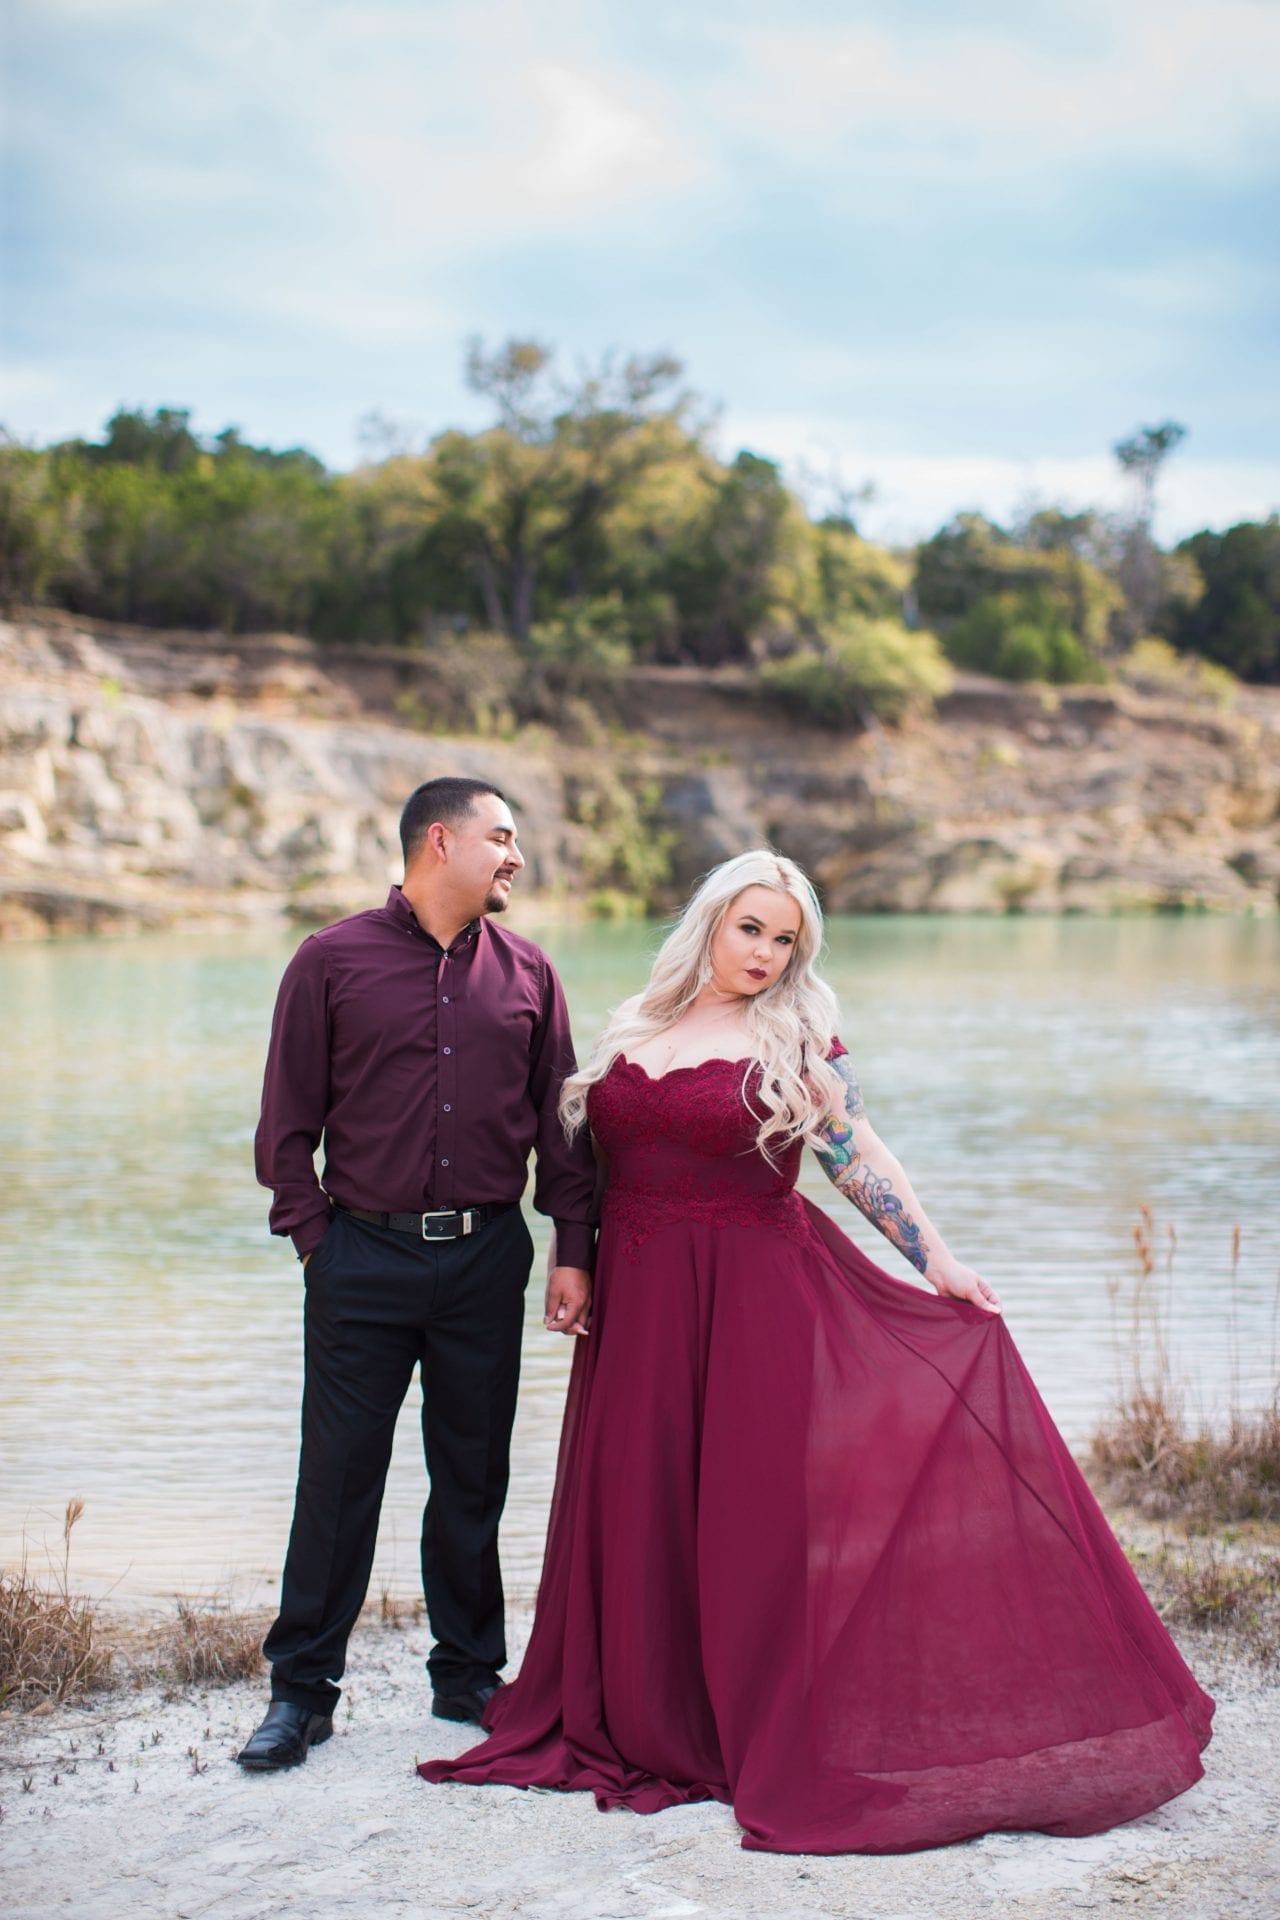 Katie and Gabe engagement session Canyon Lake dam gorge on the island looking at dress